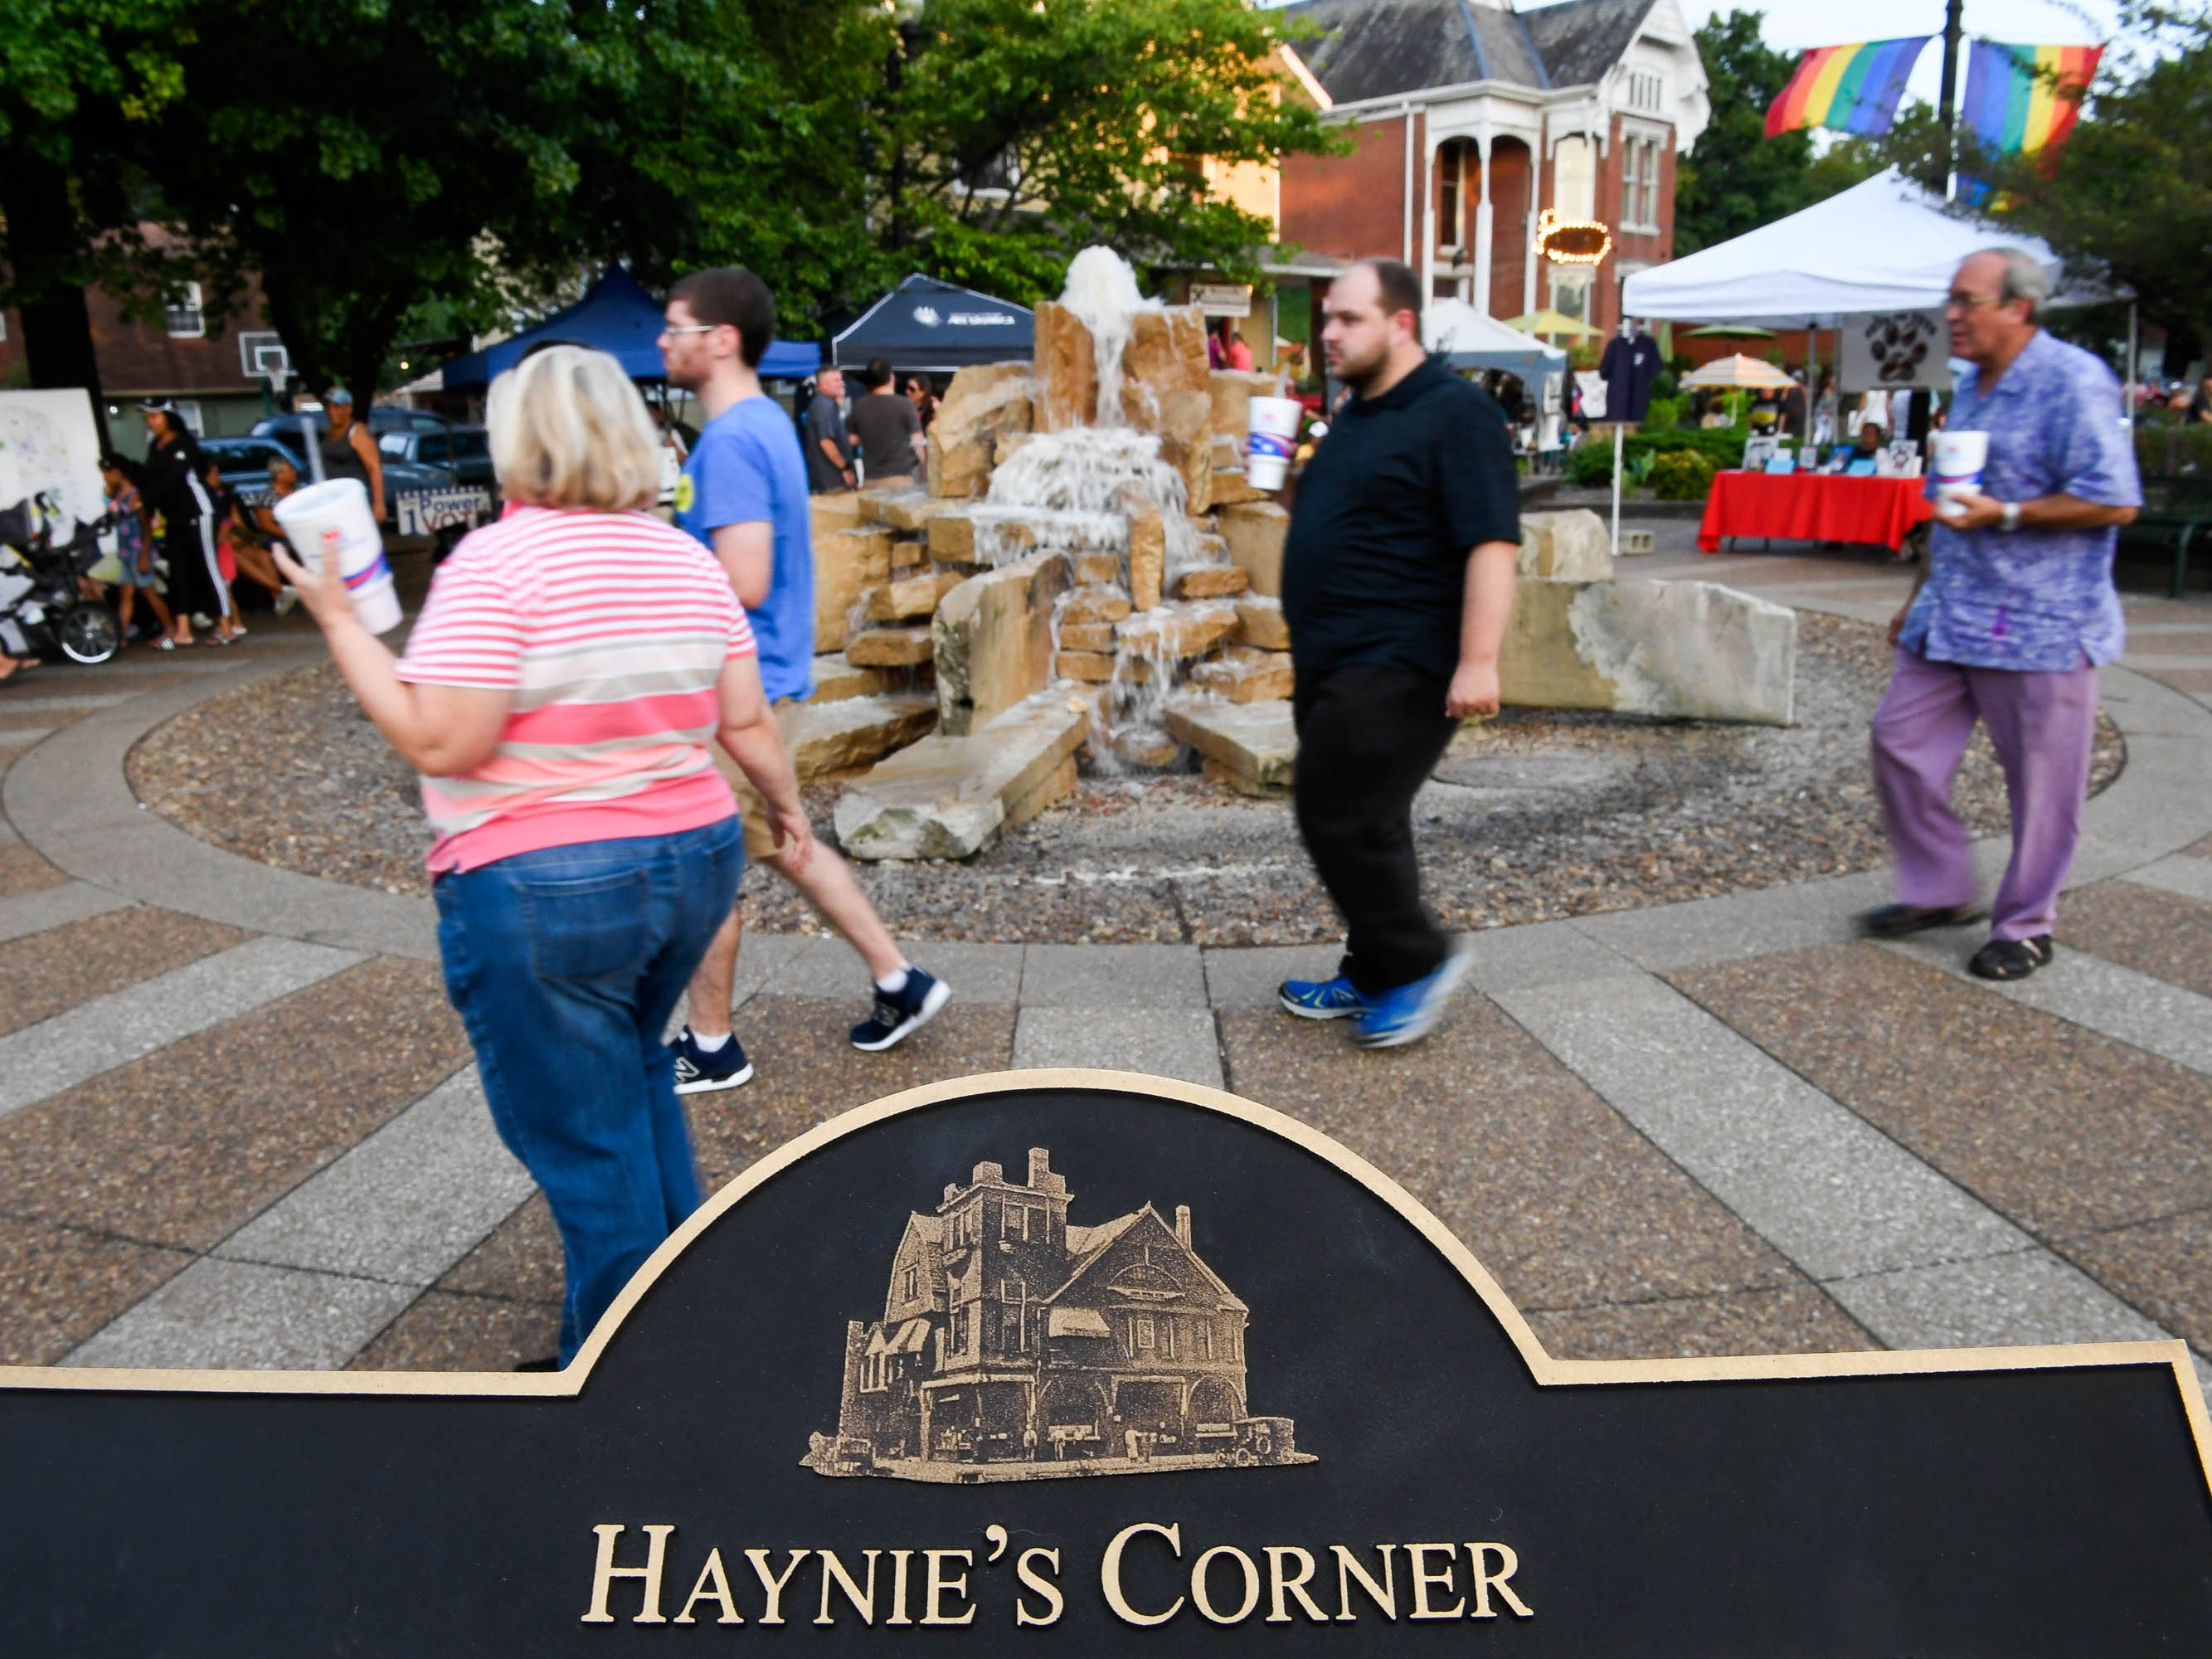 People strolling through Haynie's Corner for the First Friday event in the downtown Evansville Arts District Friday, August 3, 2018.